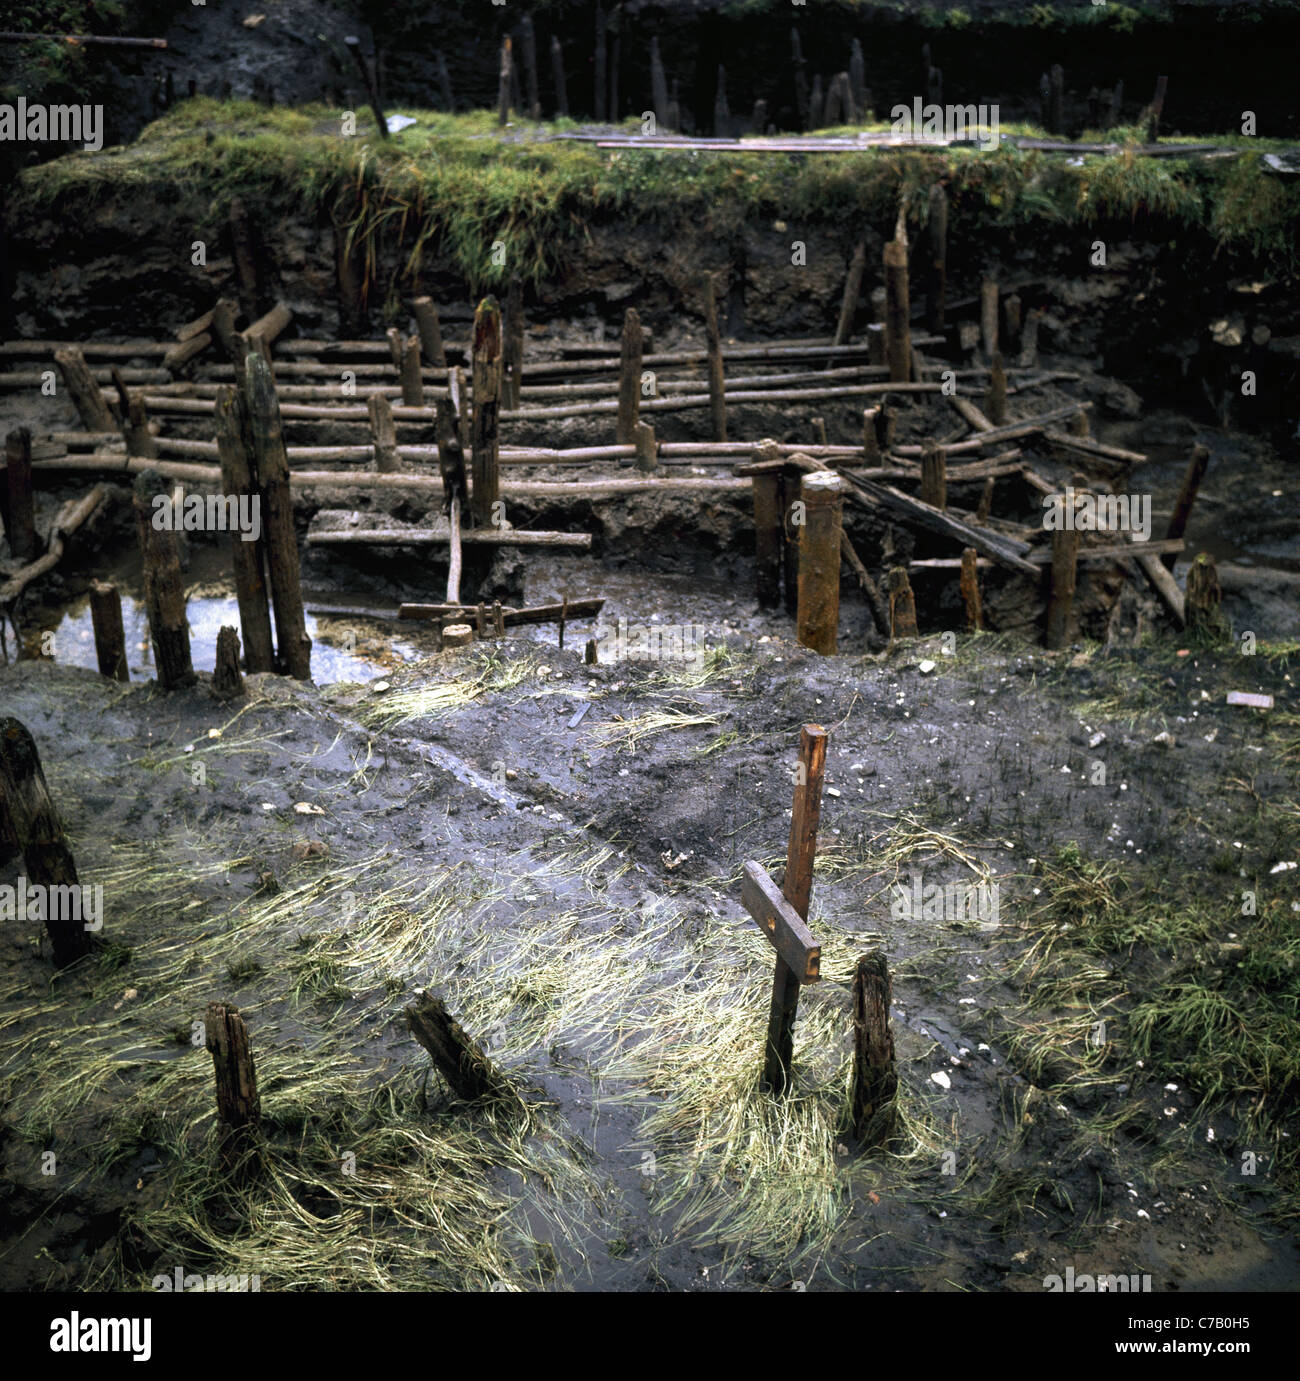 Neolithic Art. Ruins of a prehistoric house built on stilts. Ledro. Lombardy. - Stock Image